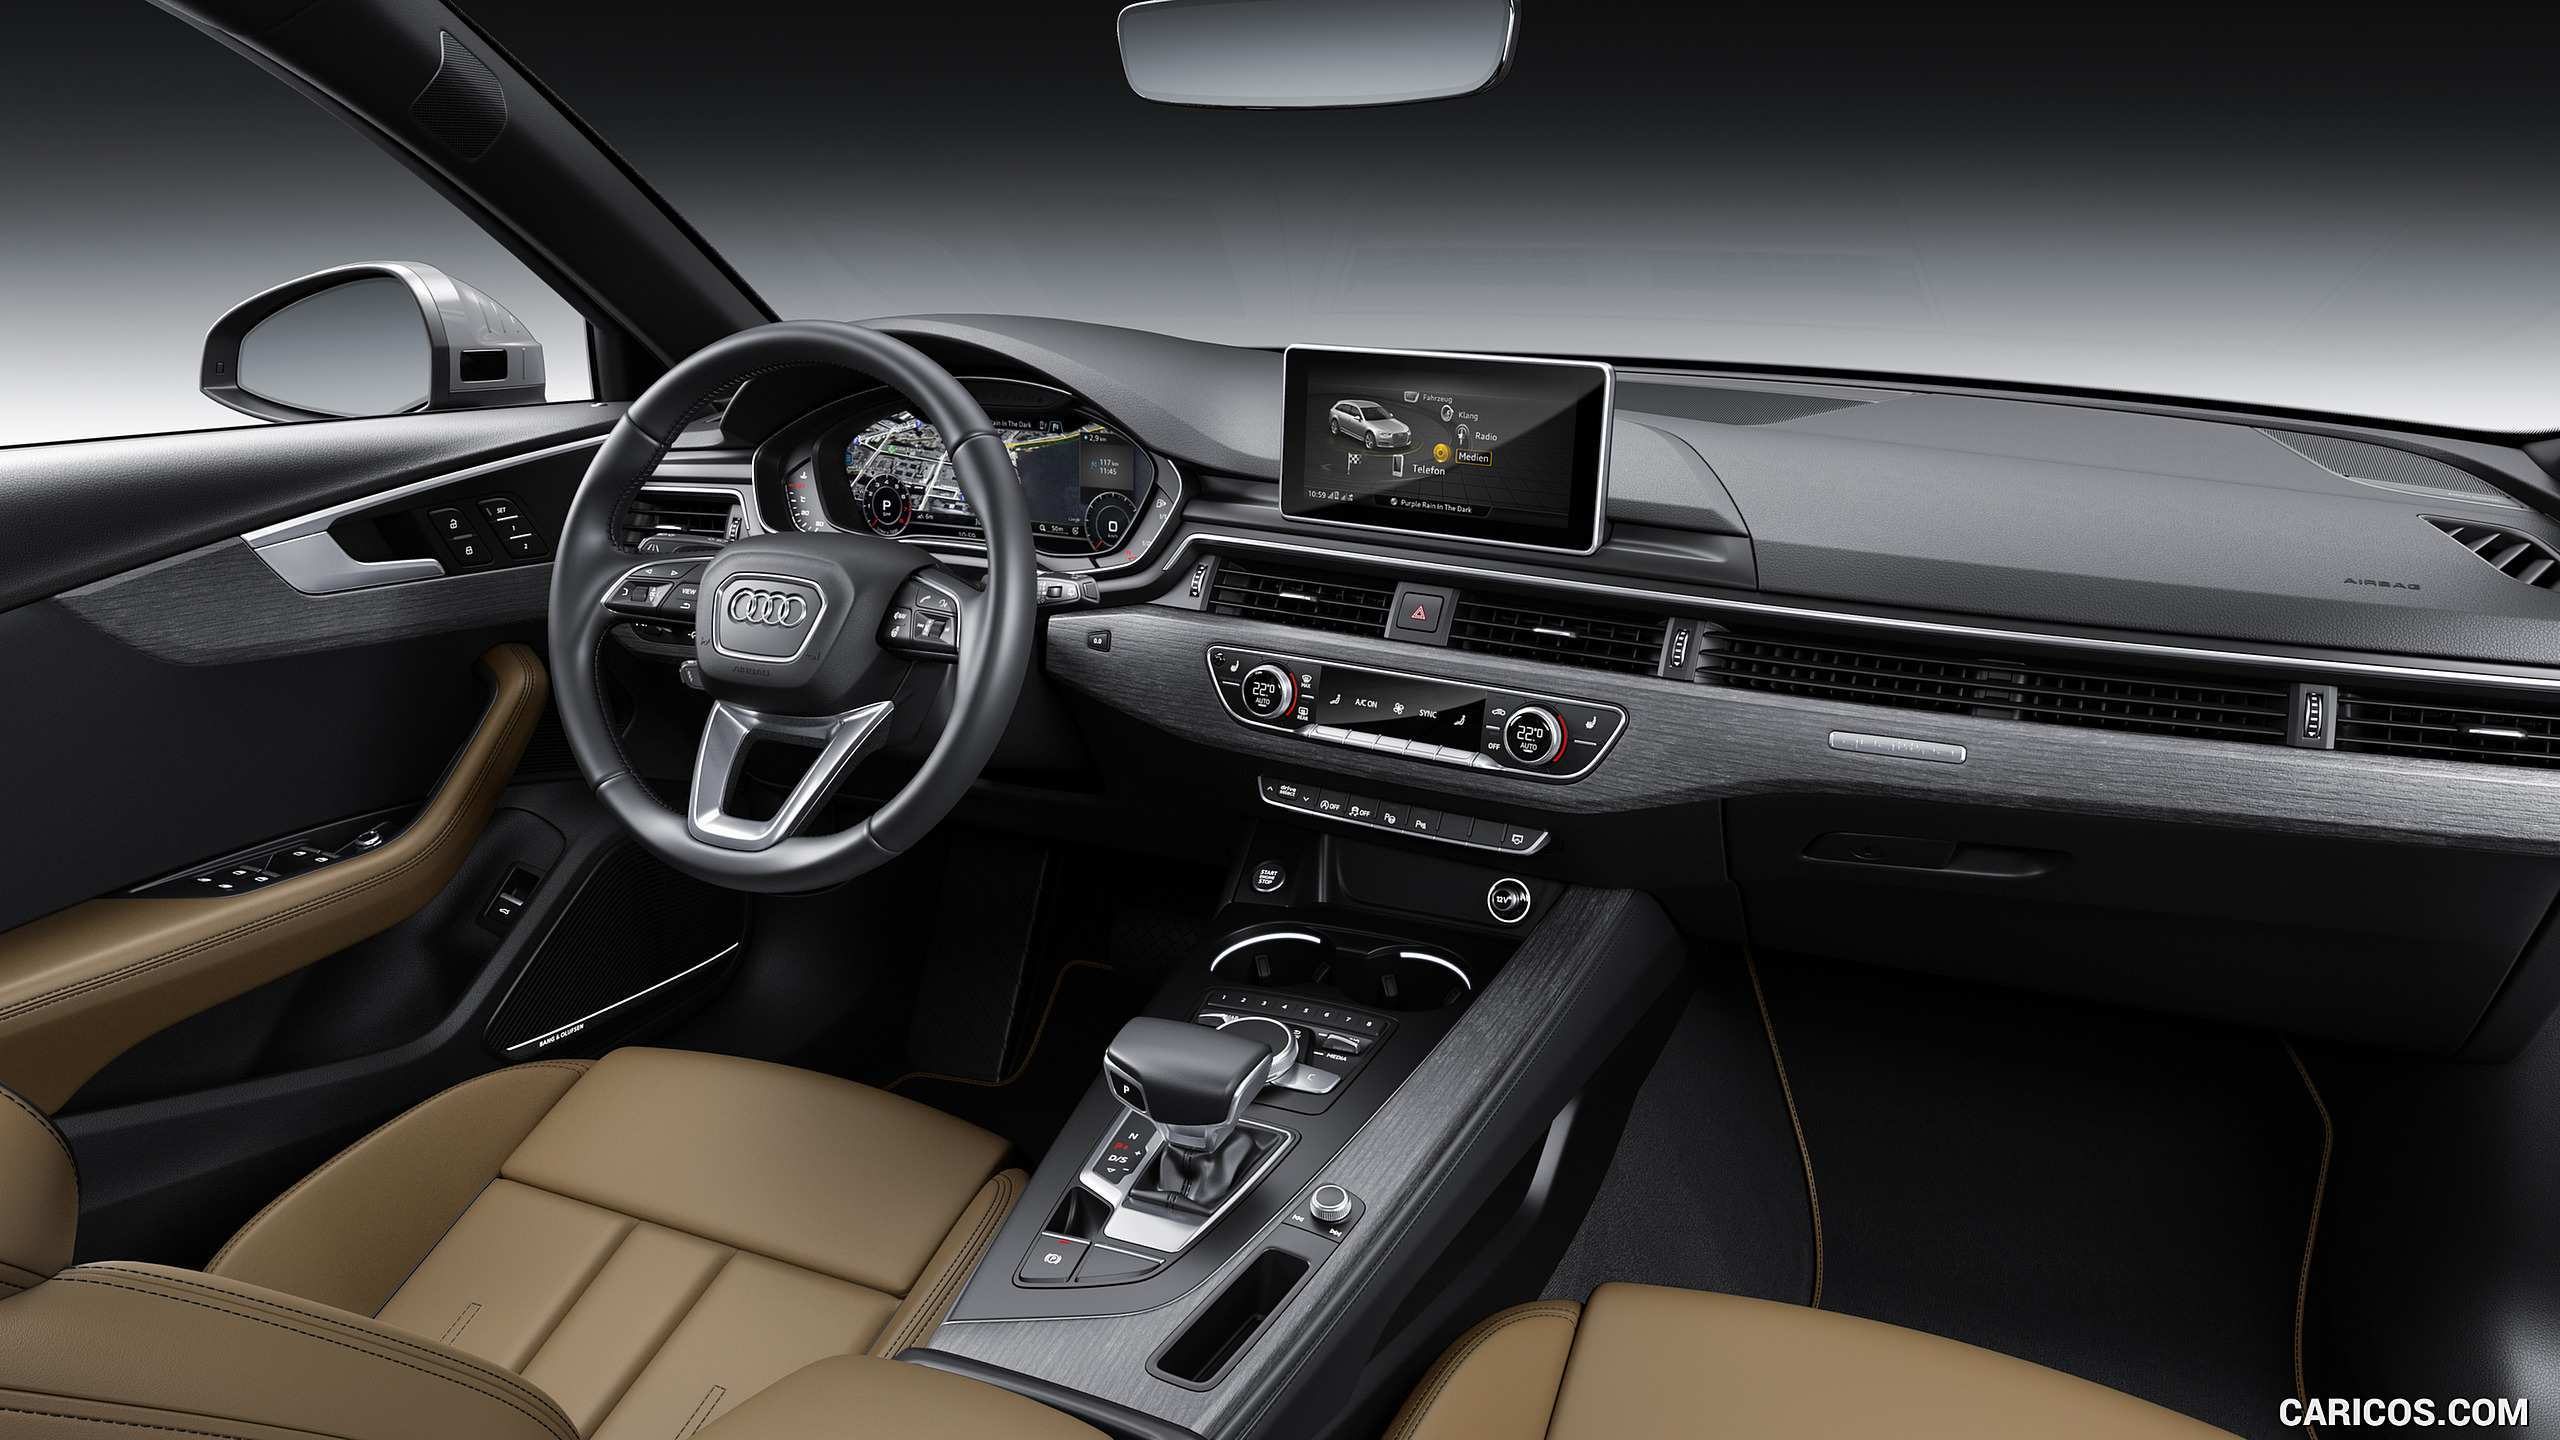 58 Best Review 2019 Audi A4 Interior Review with 2019 Audi A4 Interior